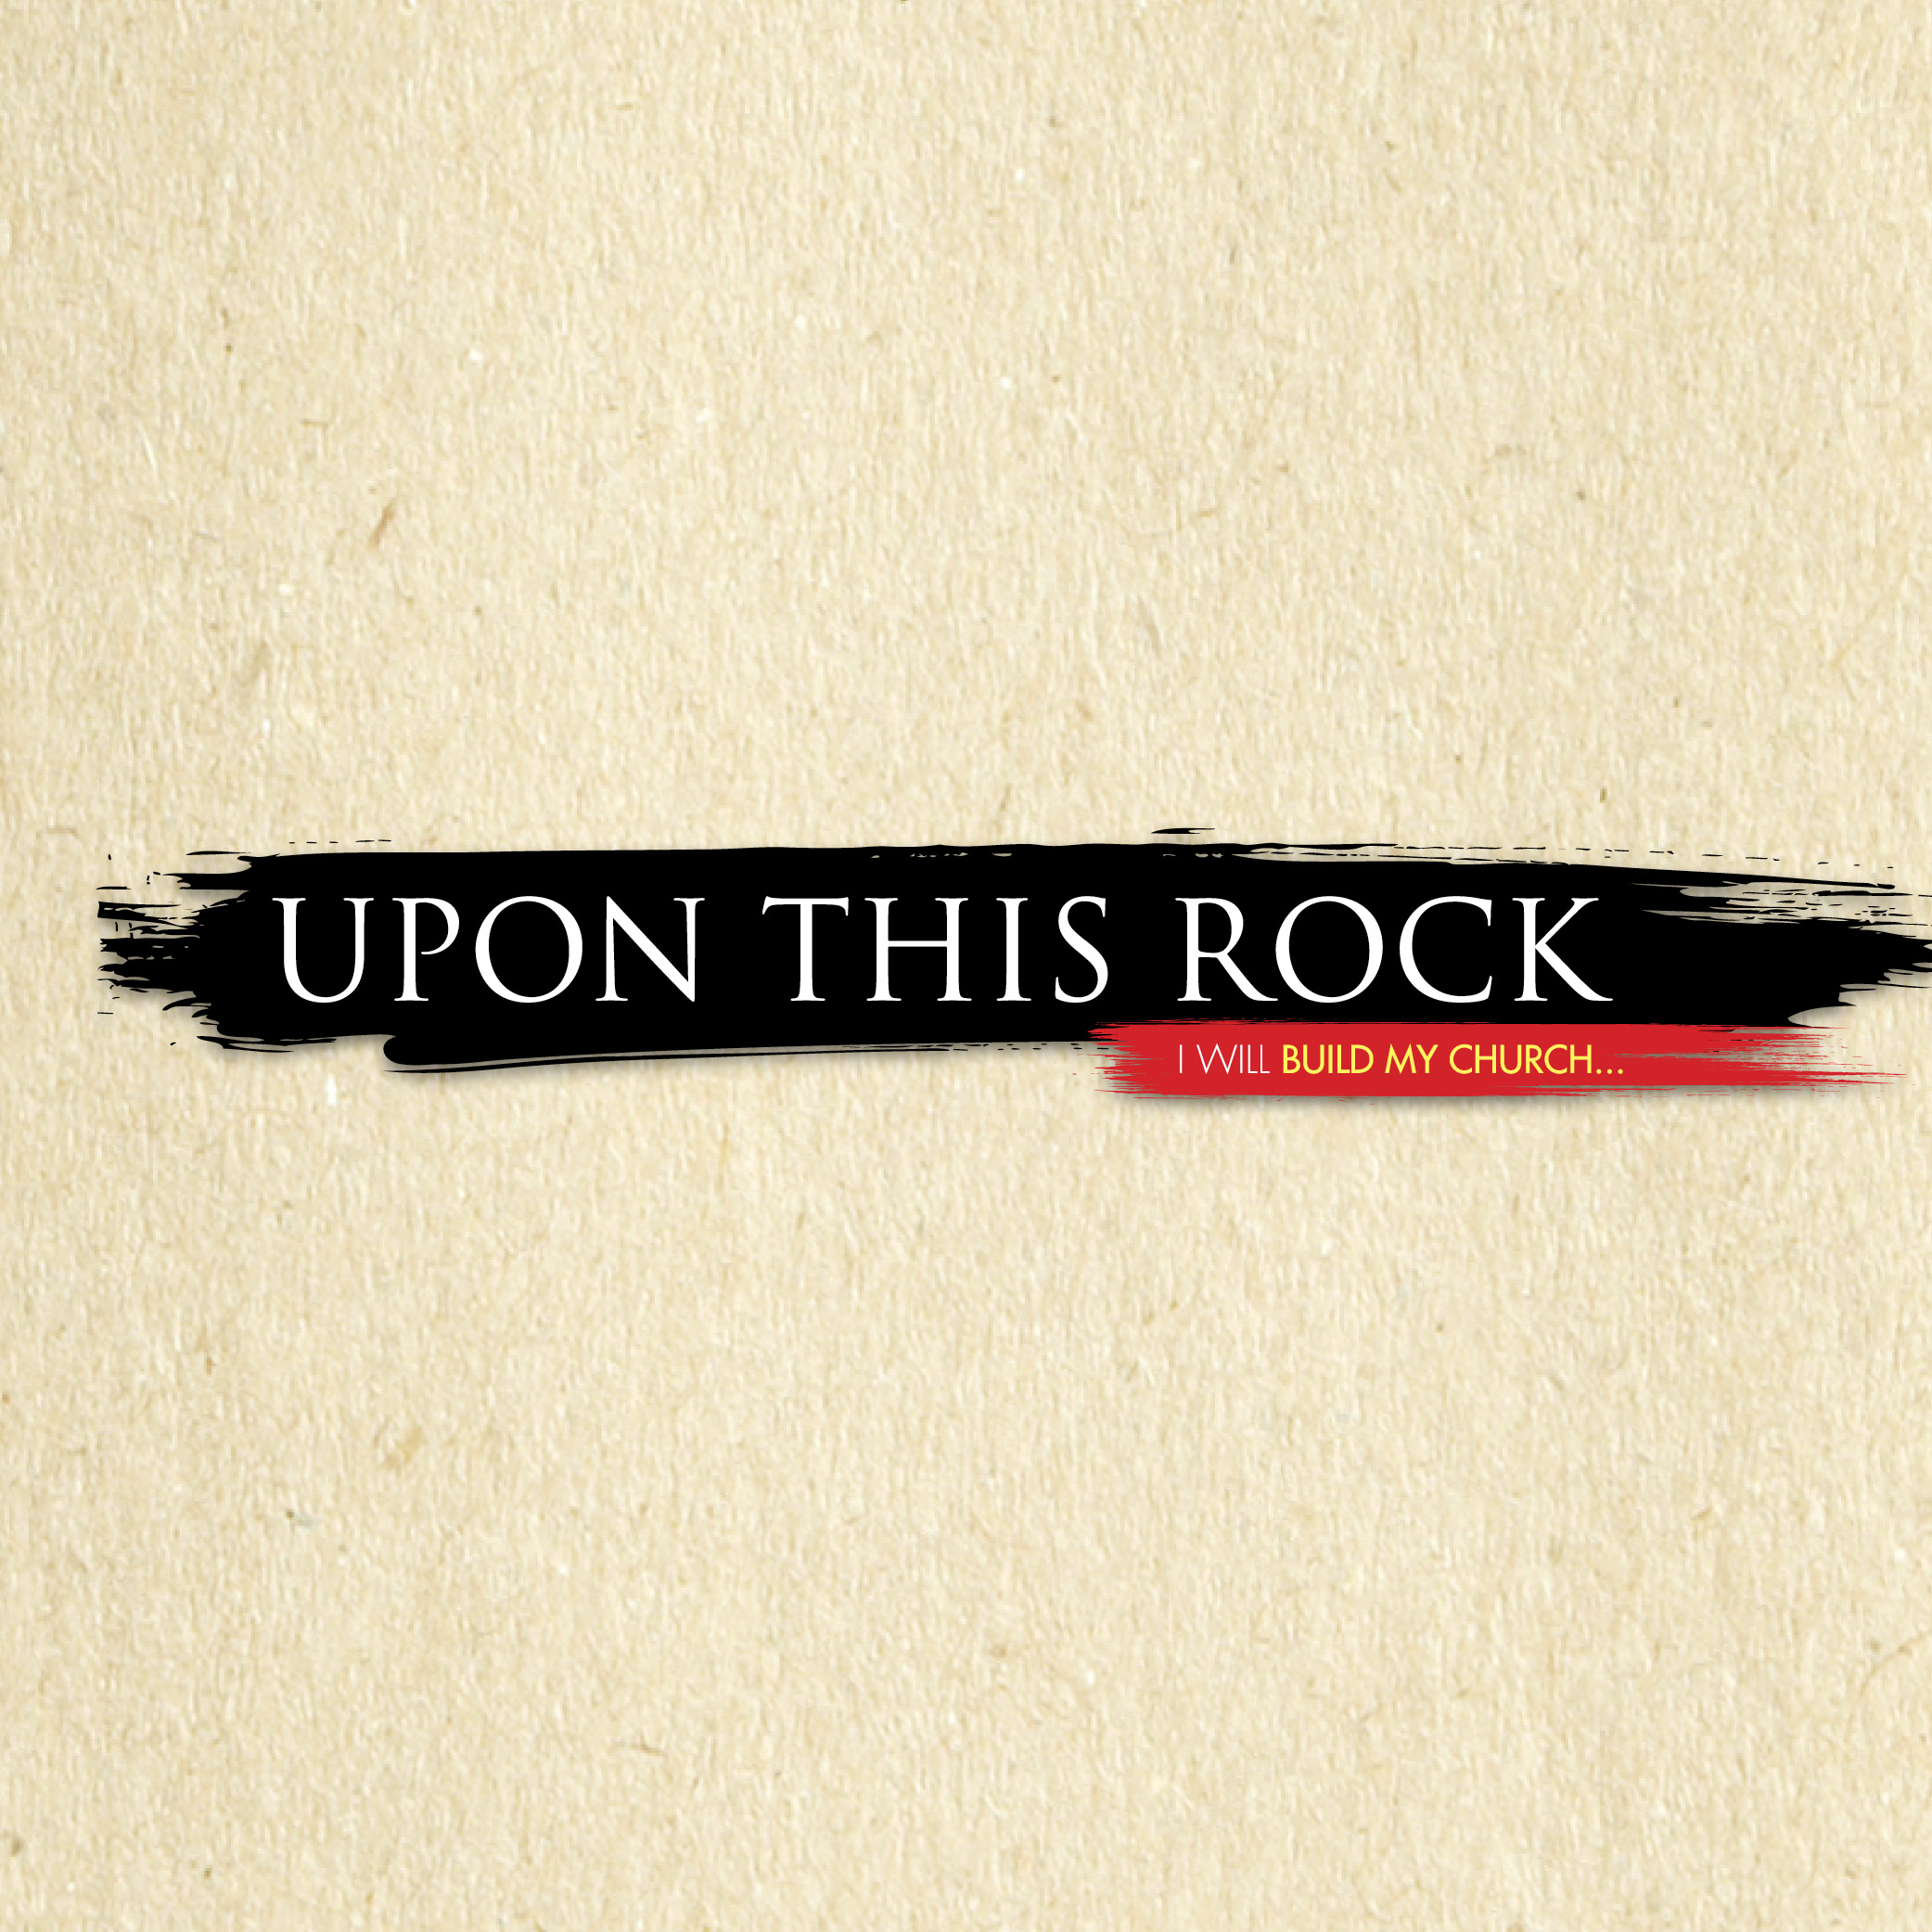 Upon This Rock Image